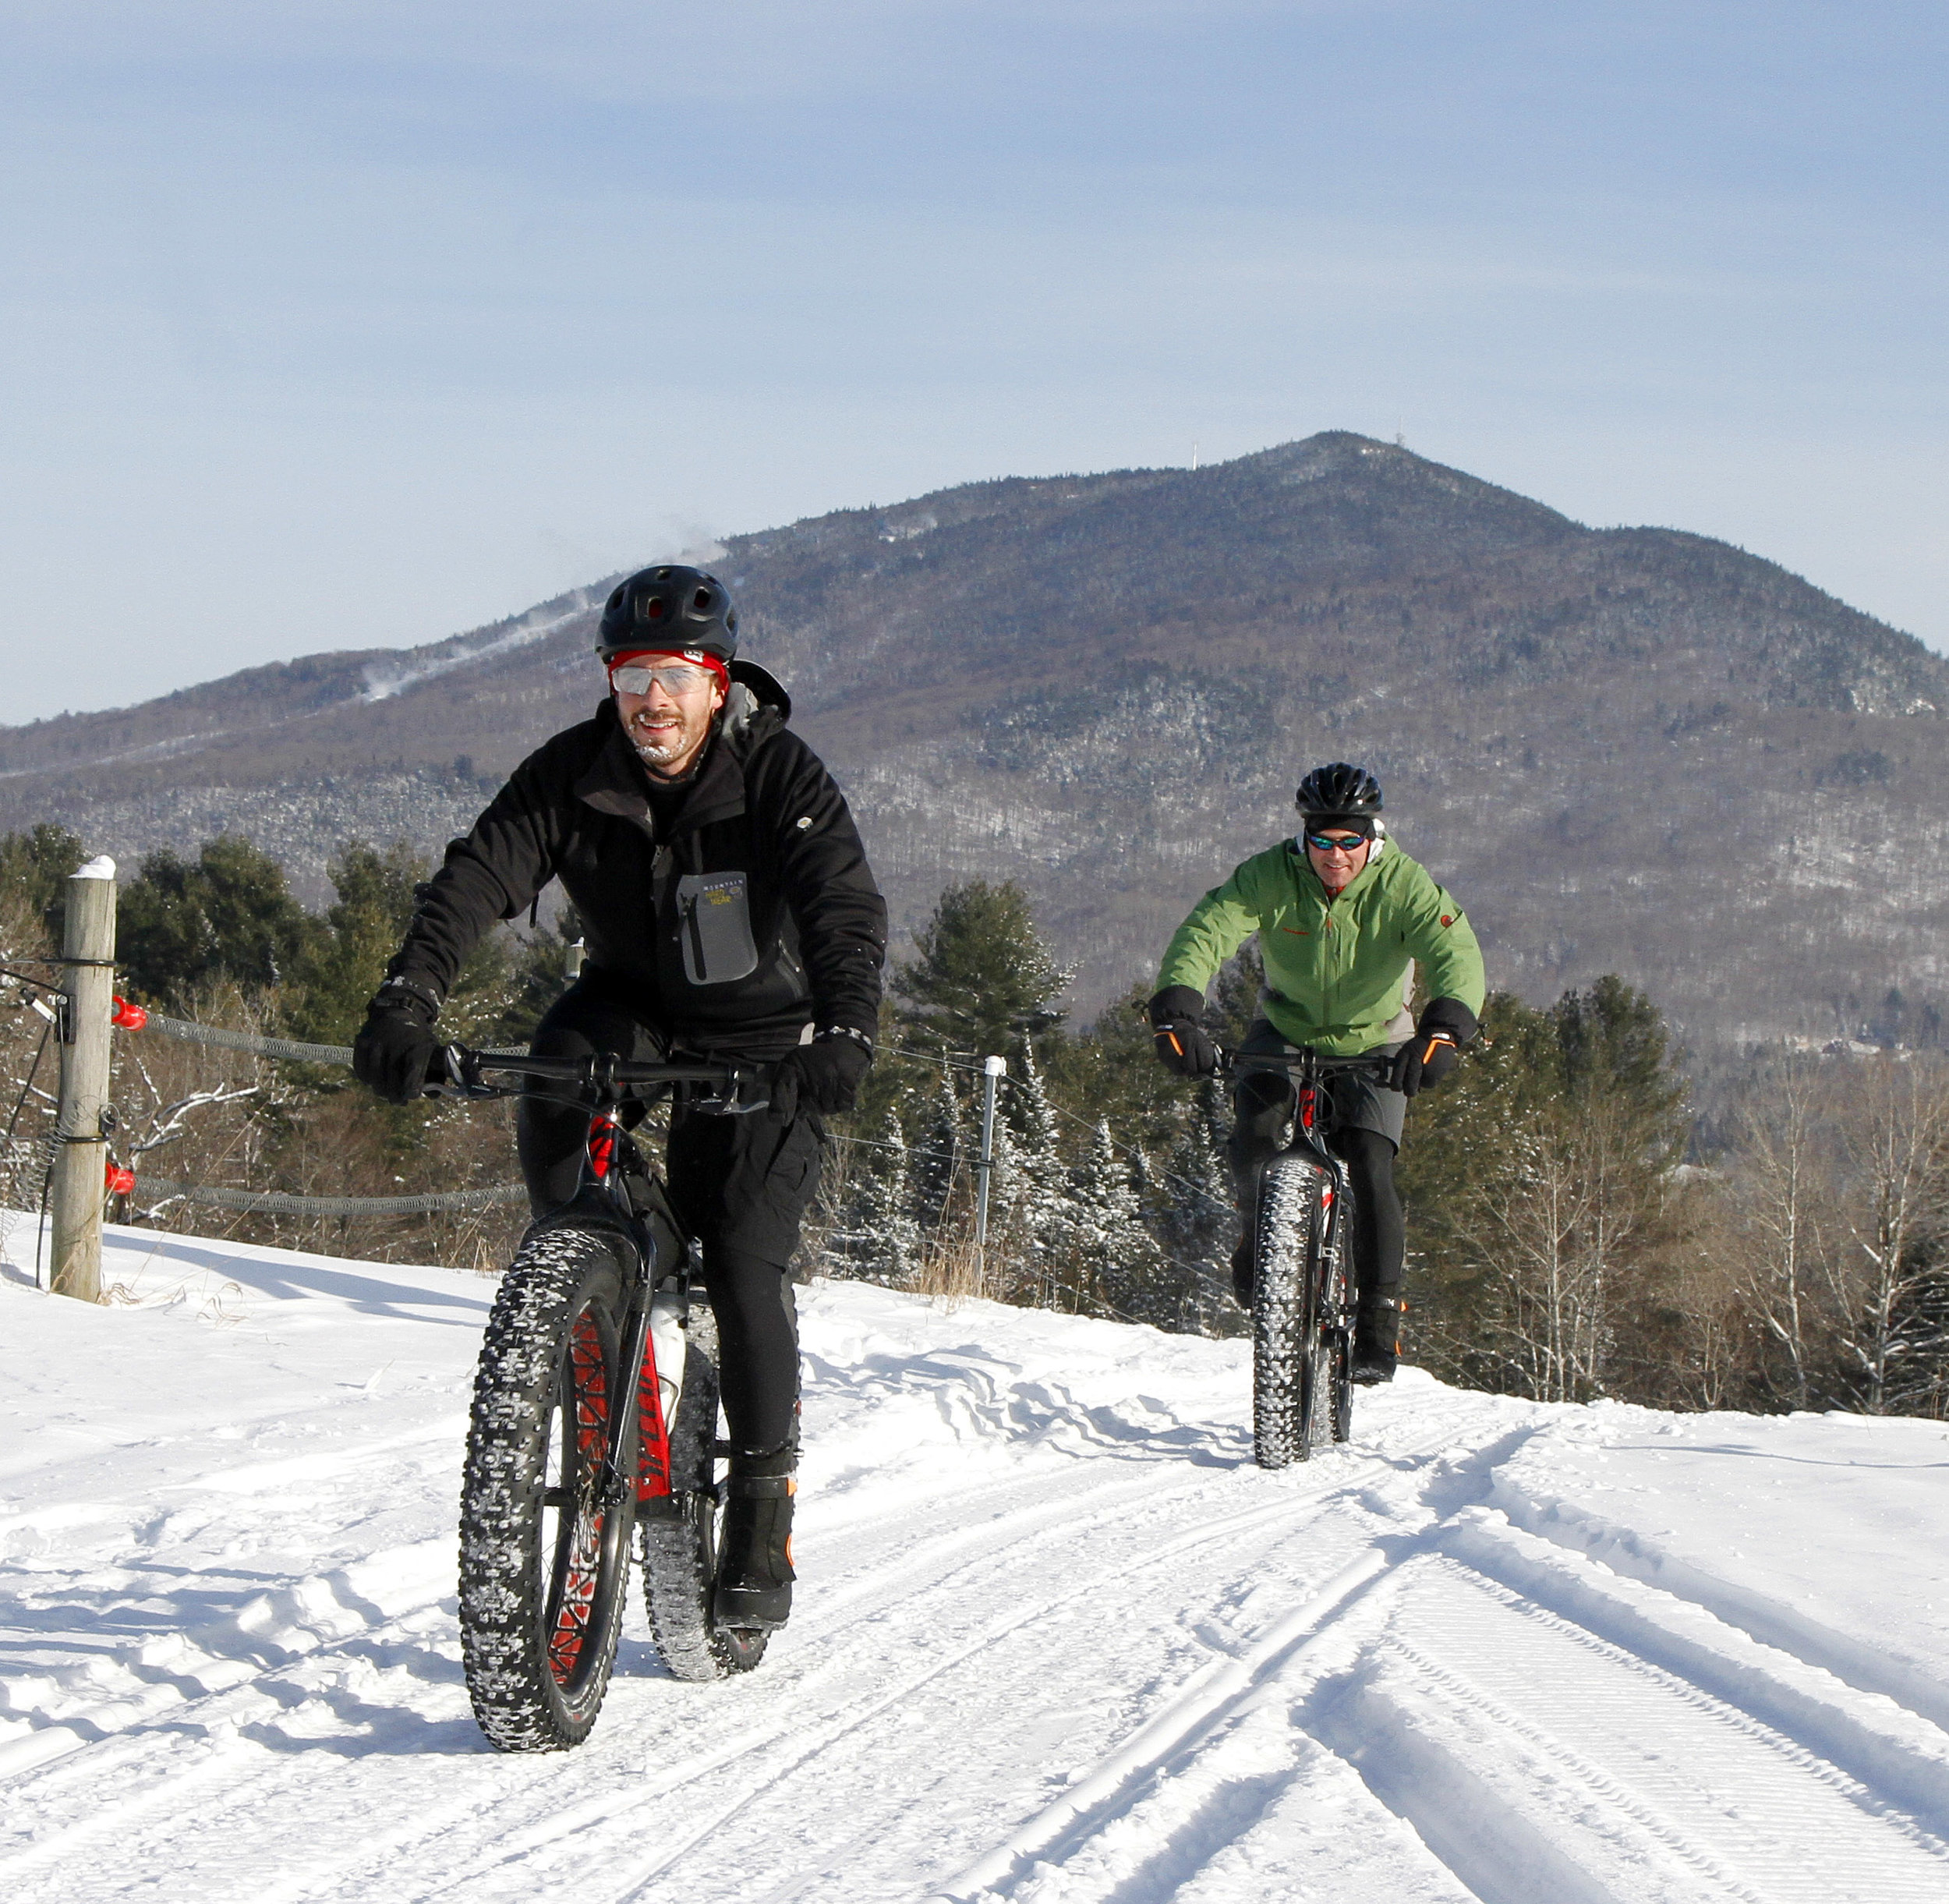 Kingdom Trails in Vermont attracts fat bikers to 30 miles of groomed trails